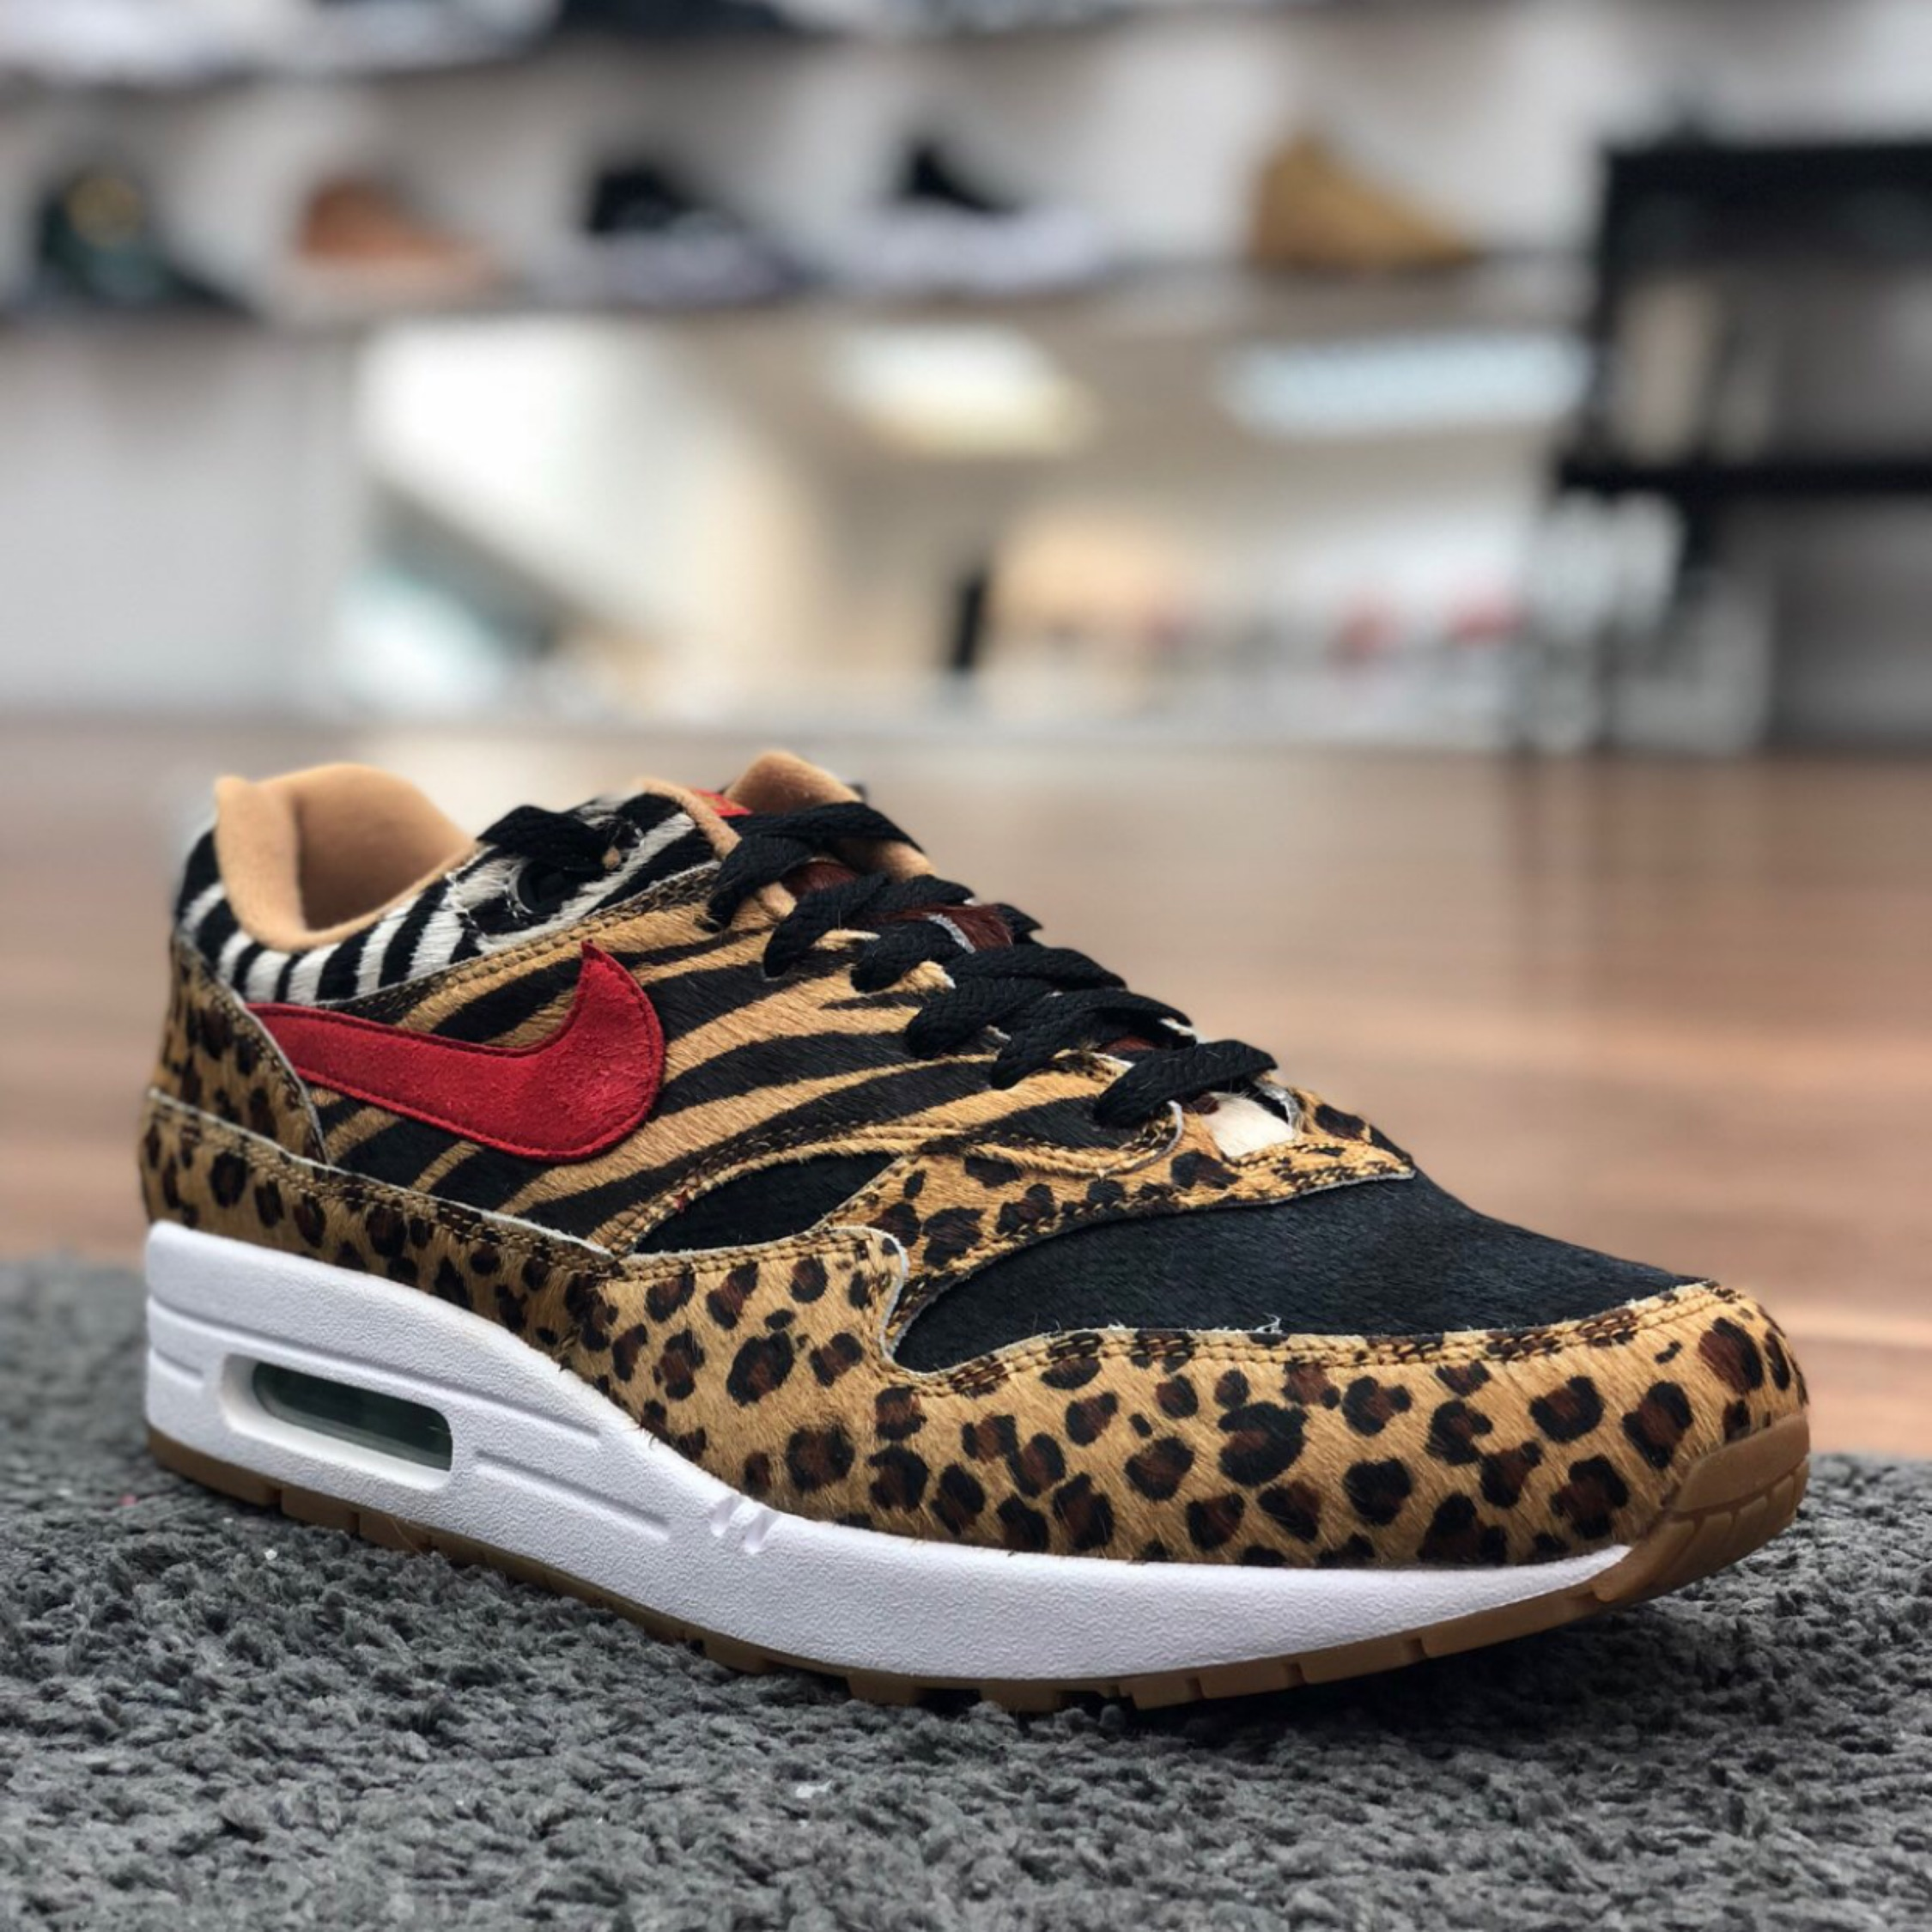 Pack Air Max X Atmos Animal Nike 1 2 0 3R4Aj5L